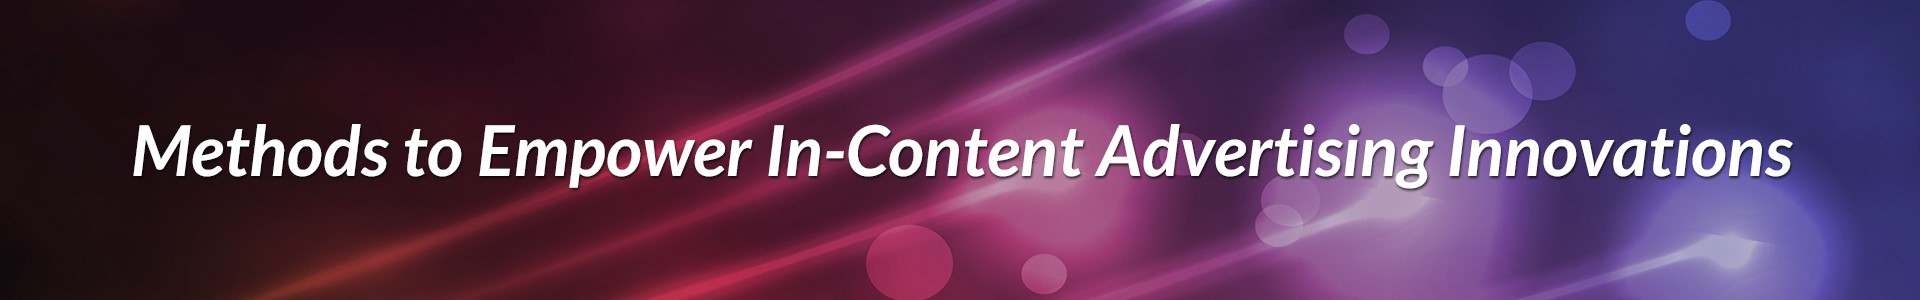 methods to empower in-content advertising innovations